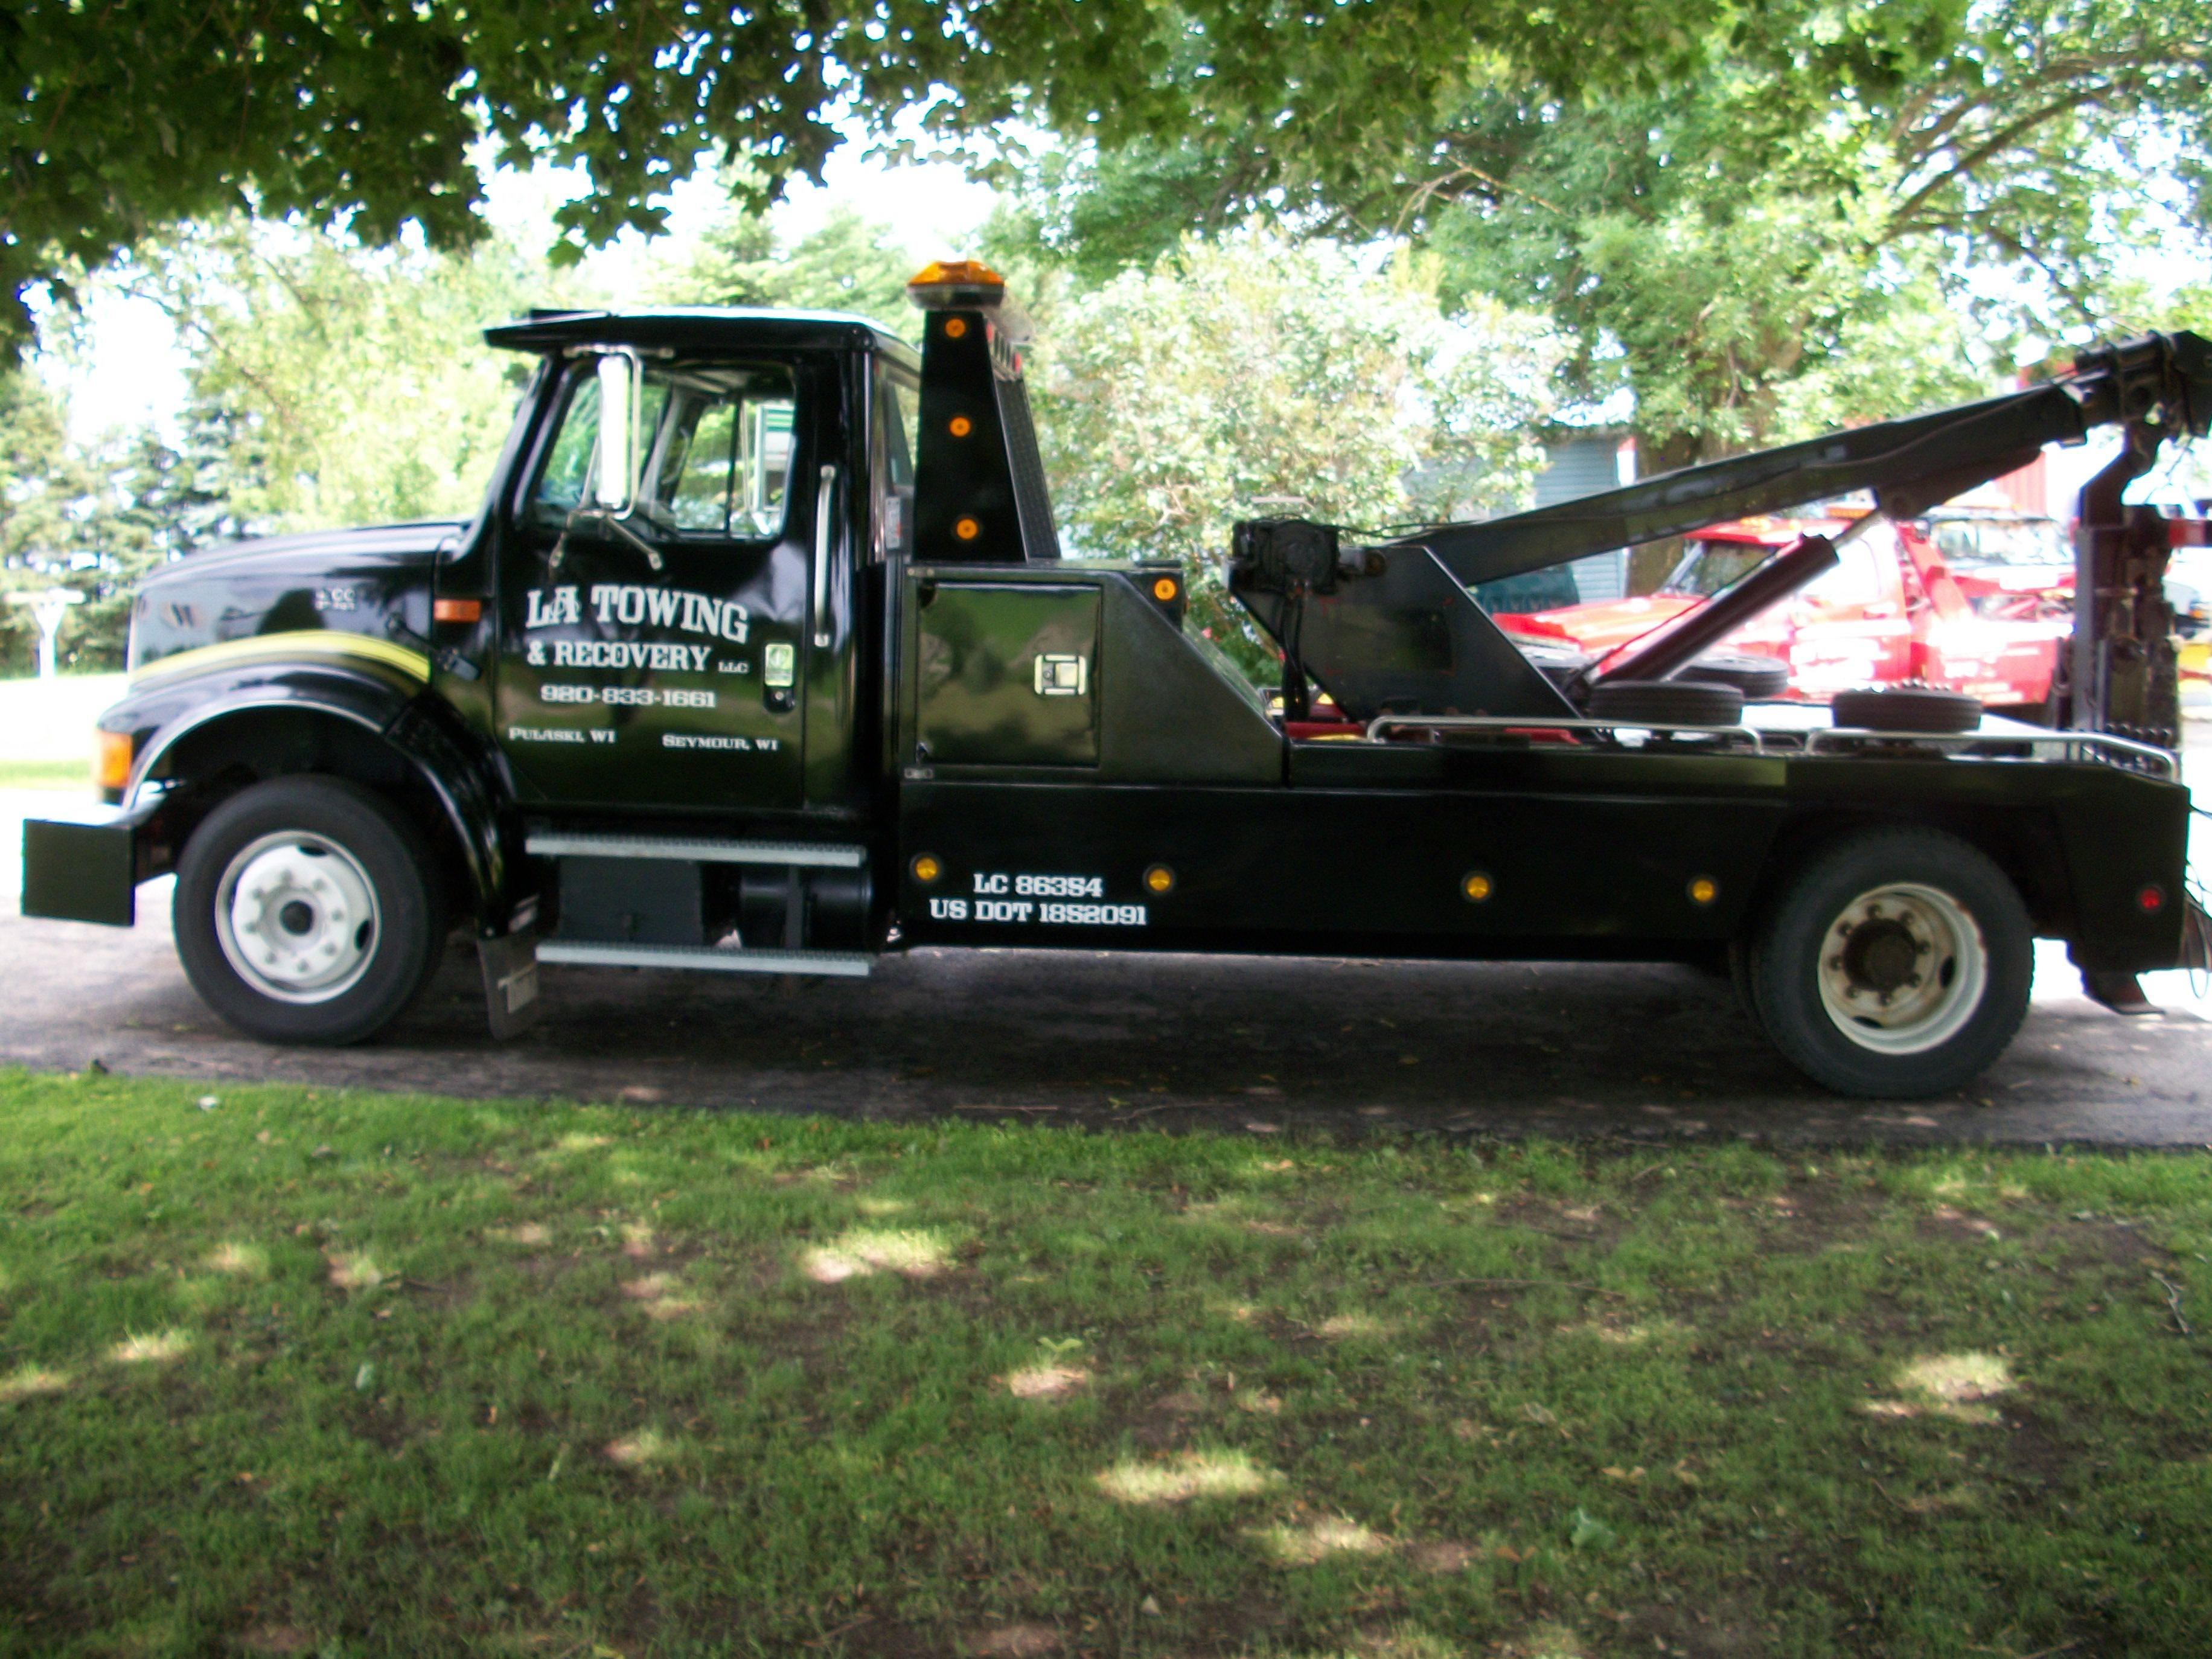 LA Towing & Recovery, LLC image 35